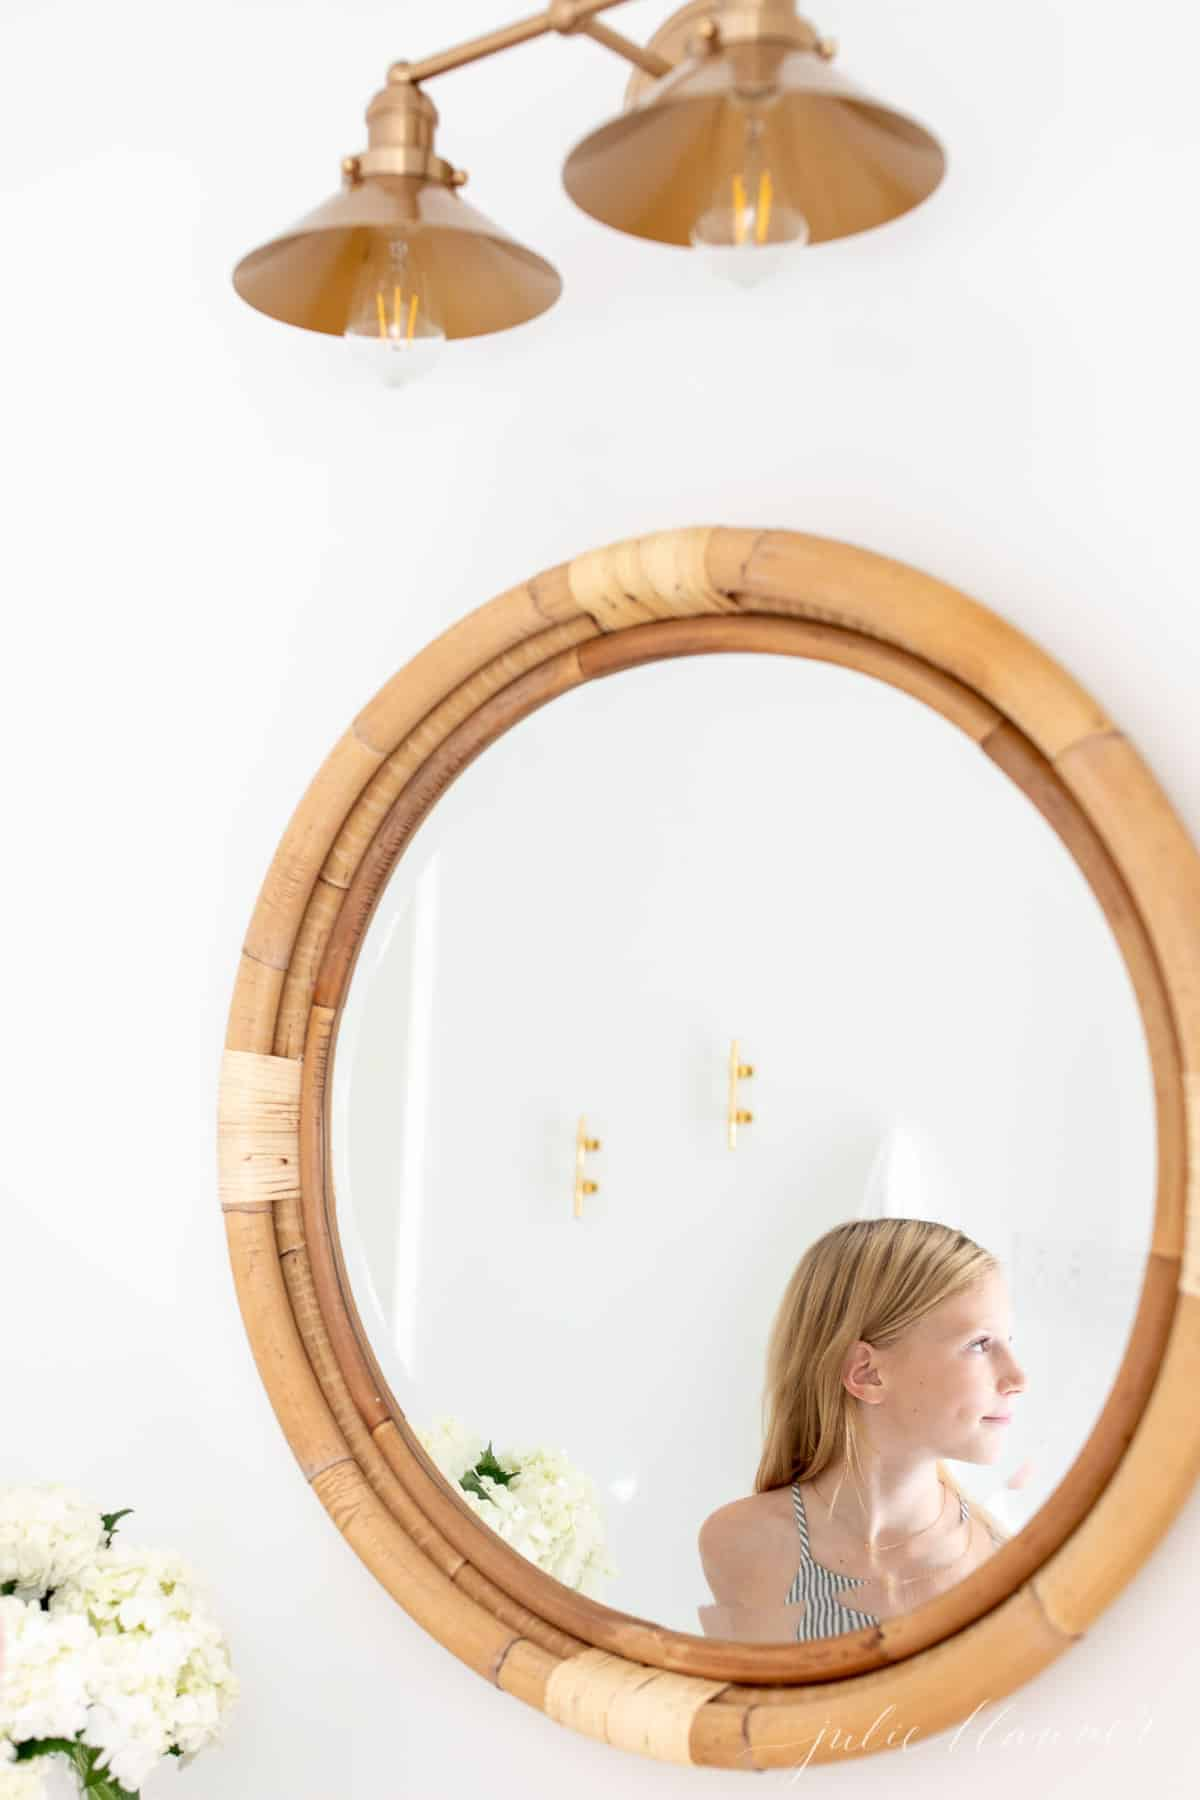 brass nautical light bathroom sconce with girl in mirror reflection